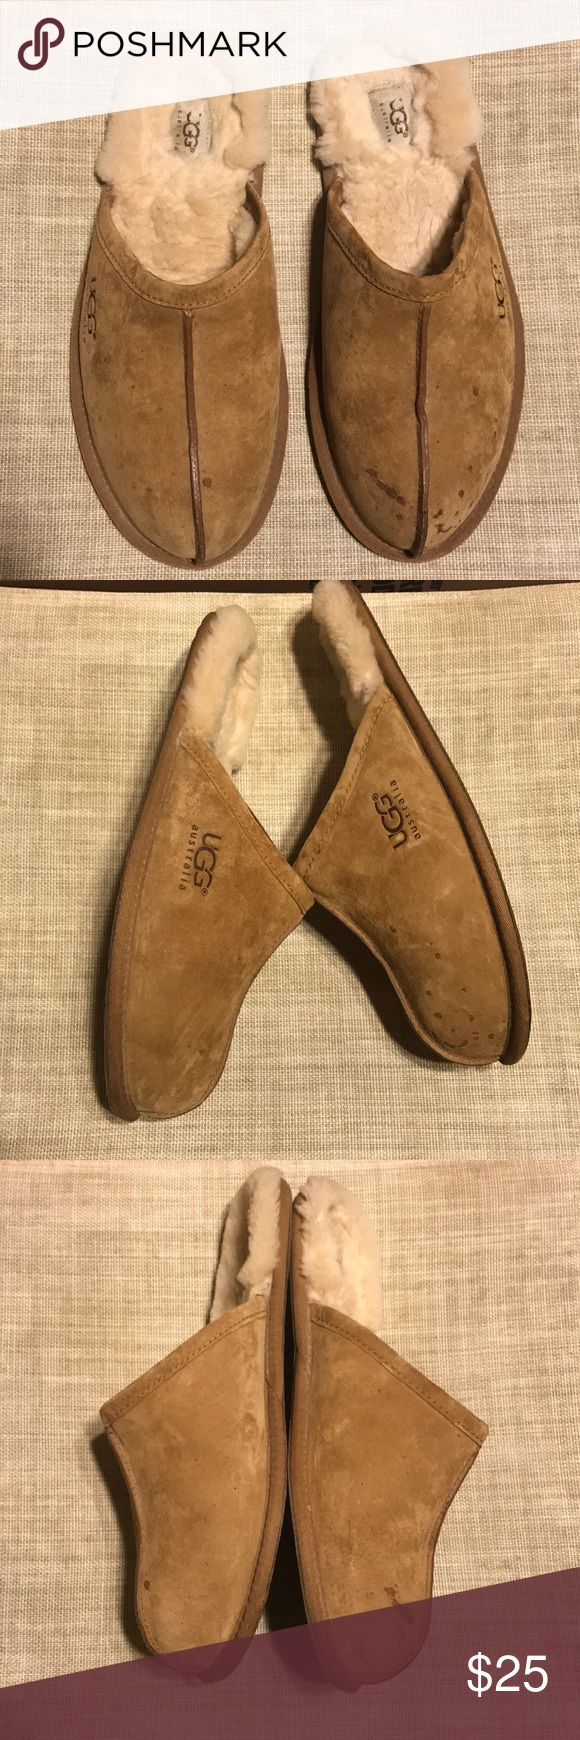 Ugg men's slippers warm and cozy men's shearling / suede ugg slippers. Good lightly used condition UGG Shoes Loafers & Slip-Ons